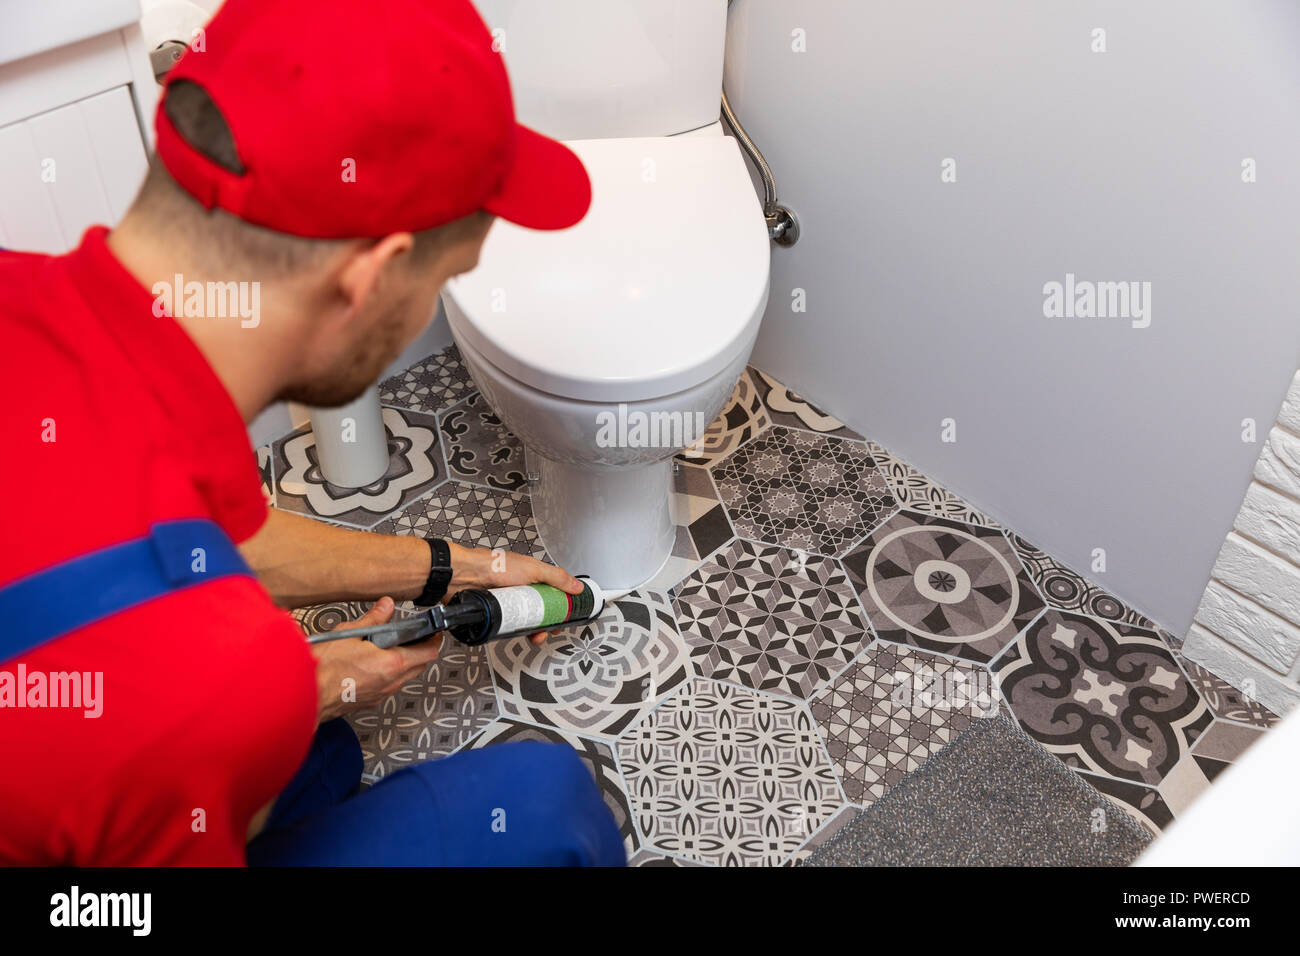 plumber applying silicone sealant around water closet - Stock Image